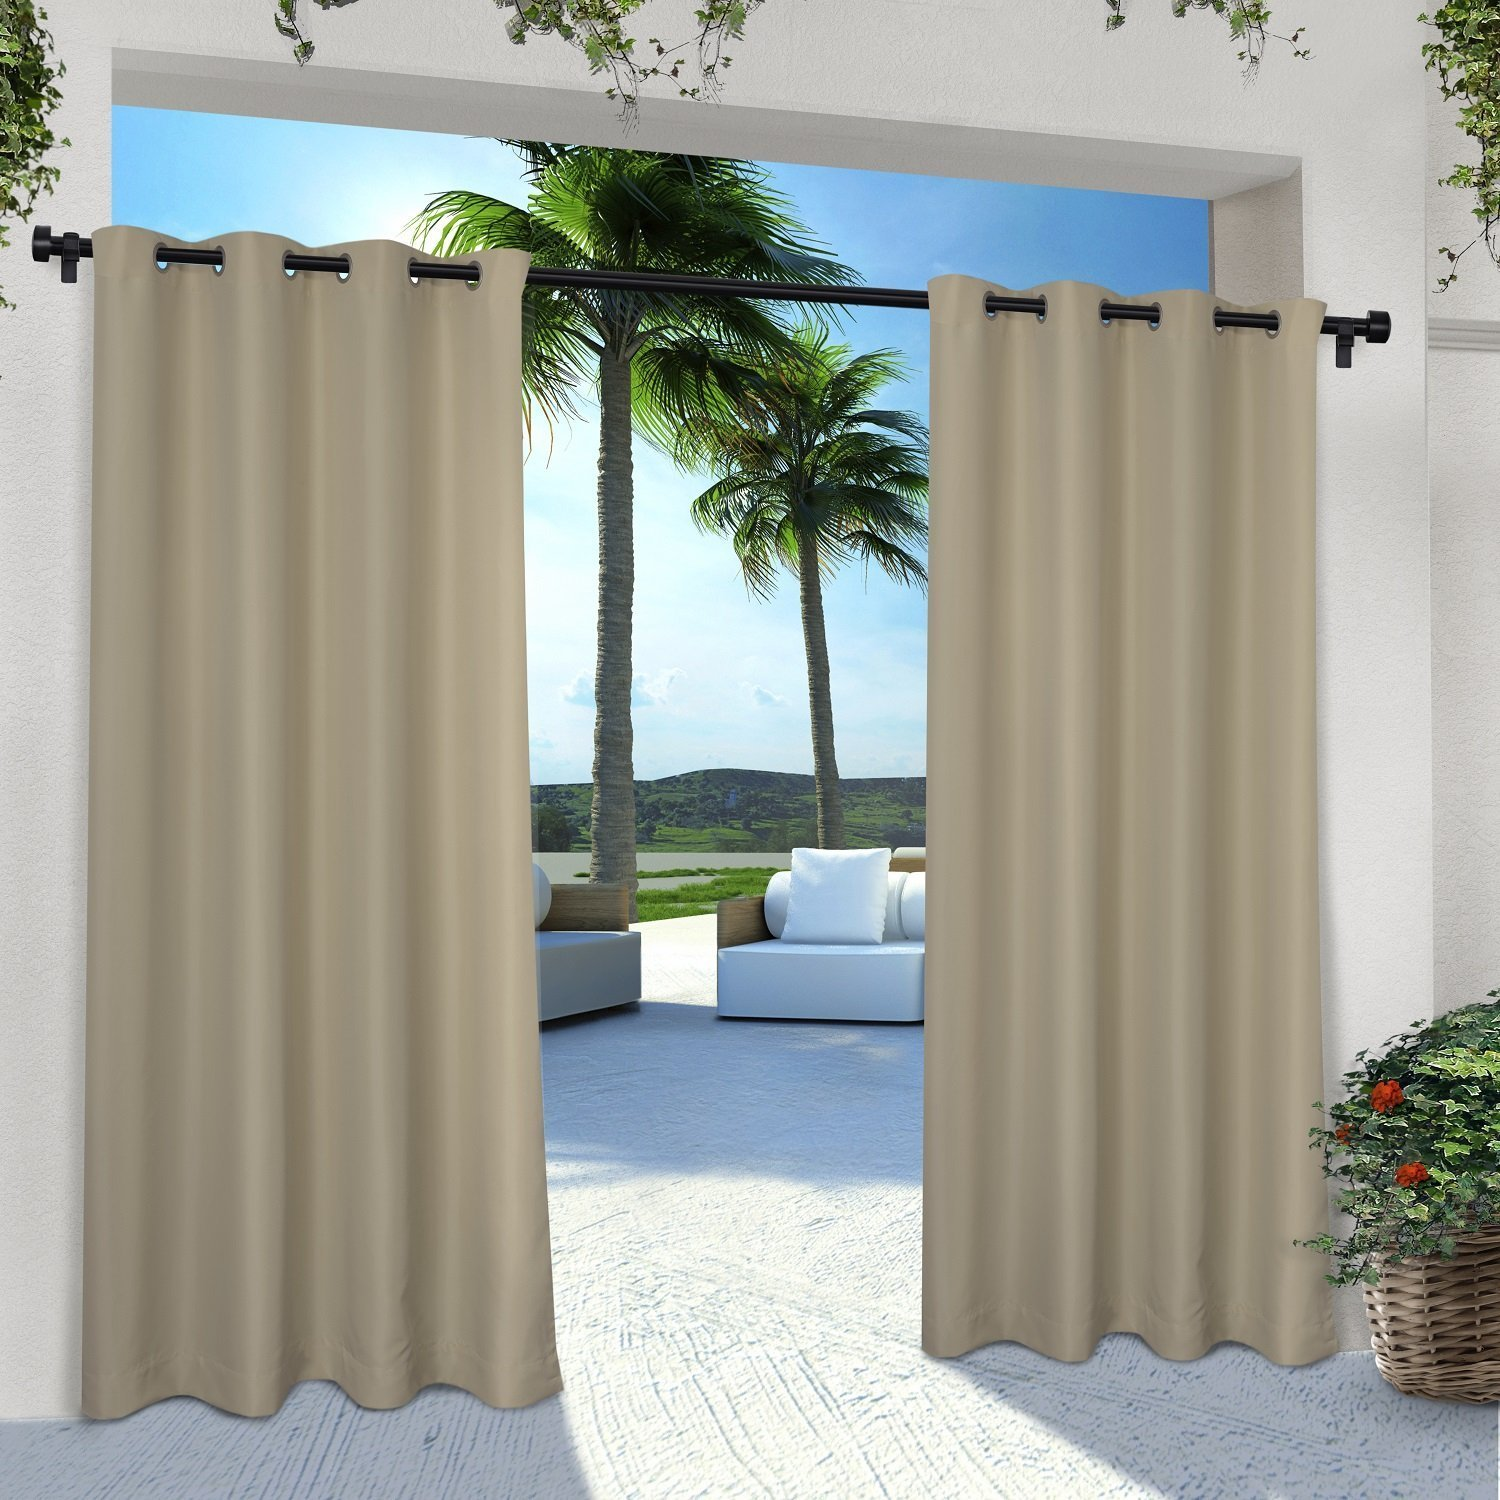 Shatex 50x120inchs Sunbrella Indoor/Outdoor single Window Curtain Panel Drape Nickel Grommet Top Wheat UV Ray Protected (Available in Multiple sizes)